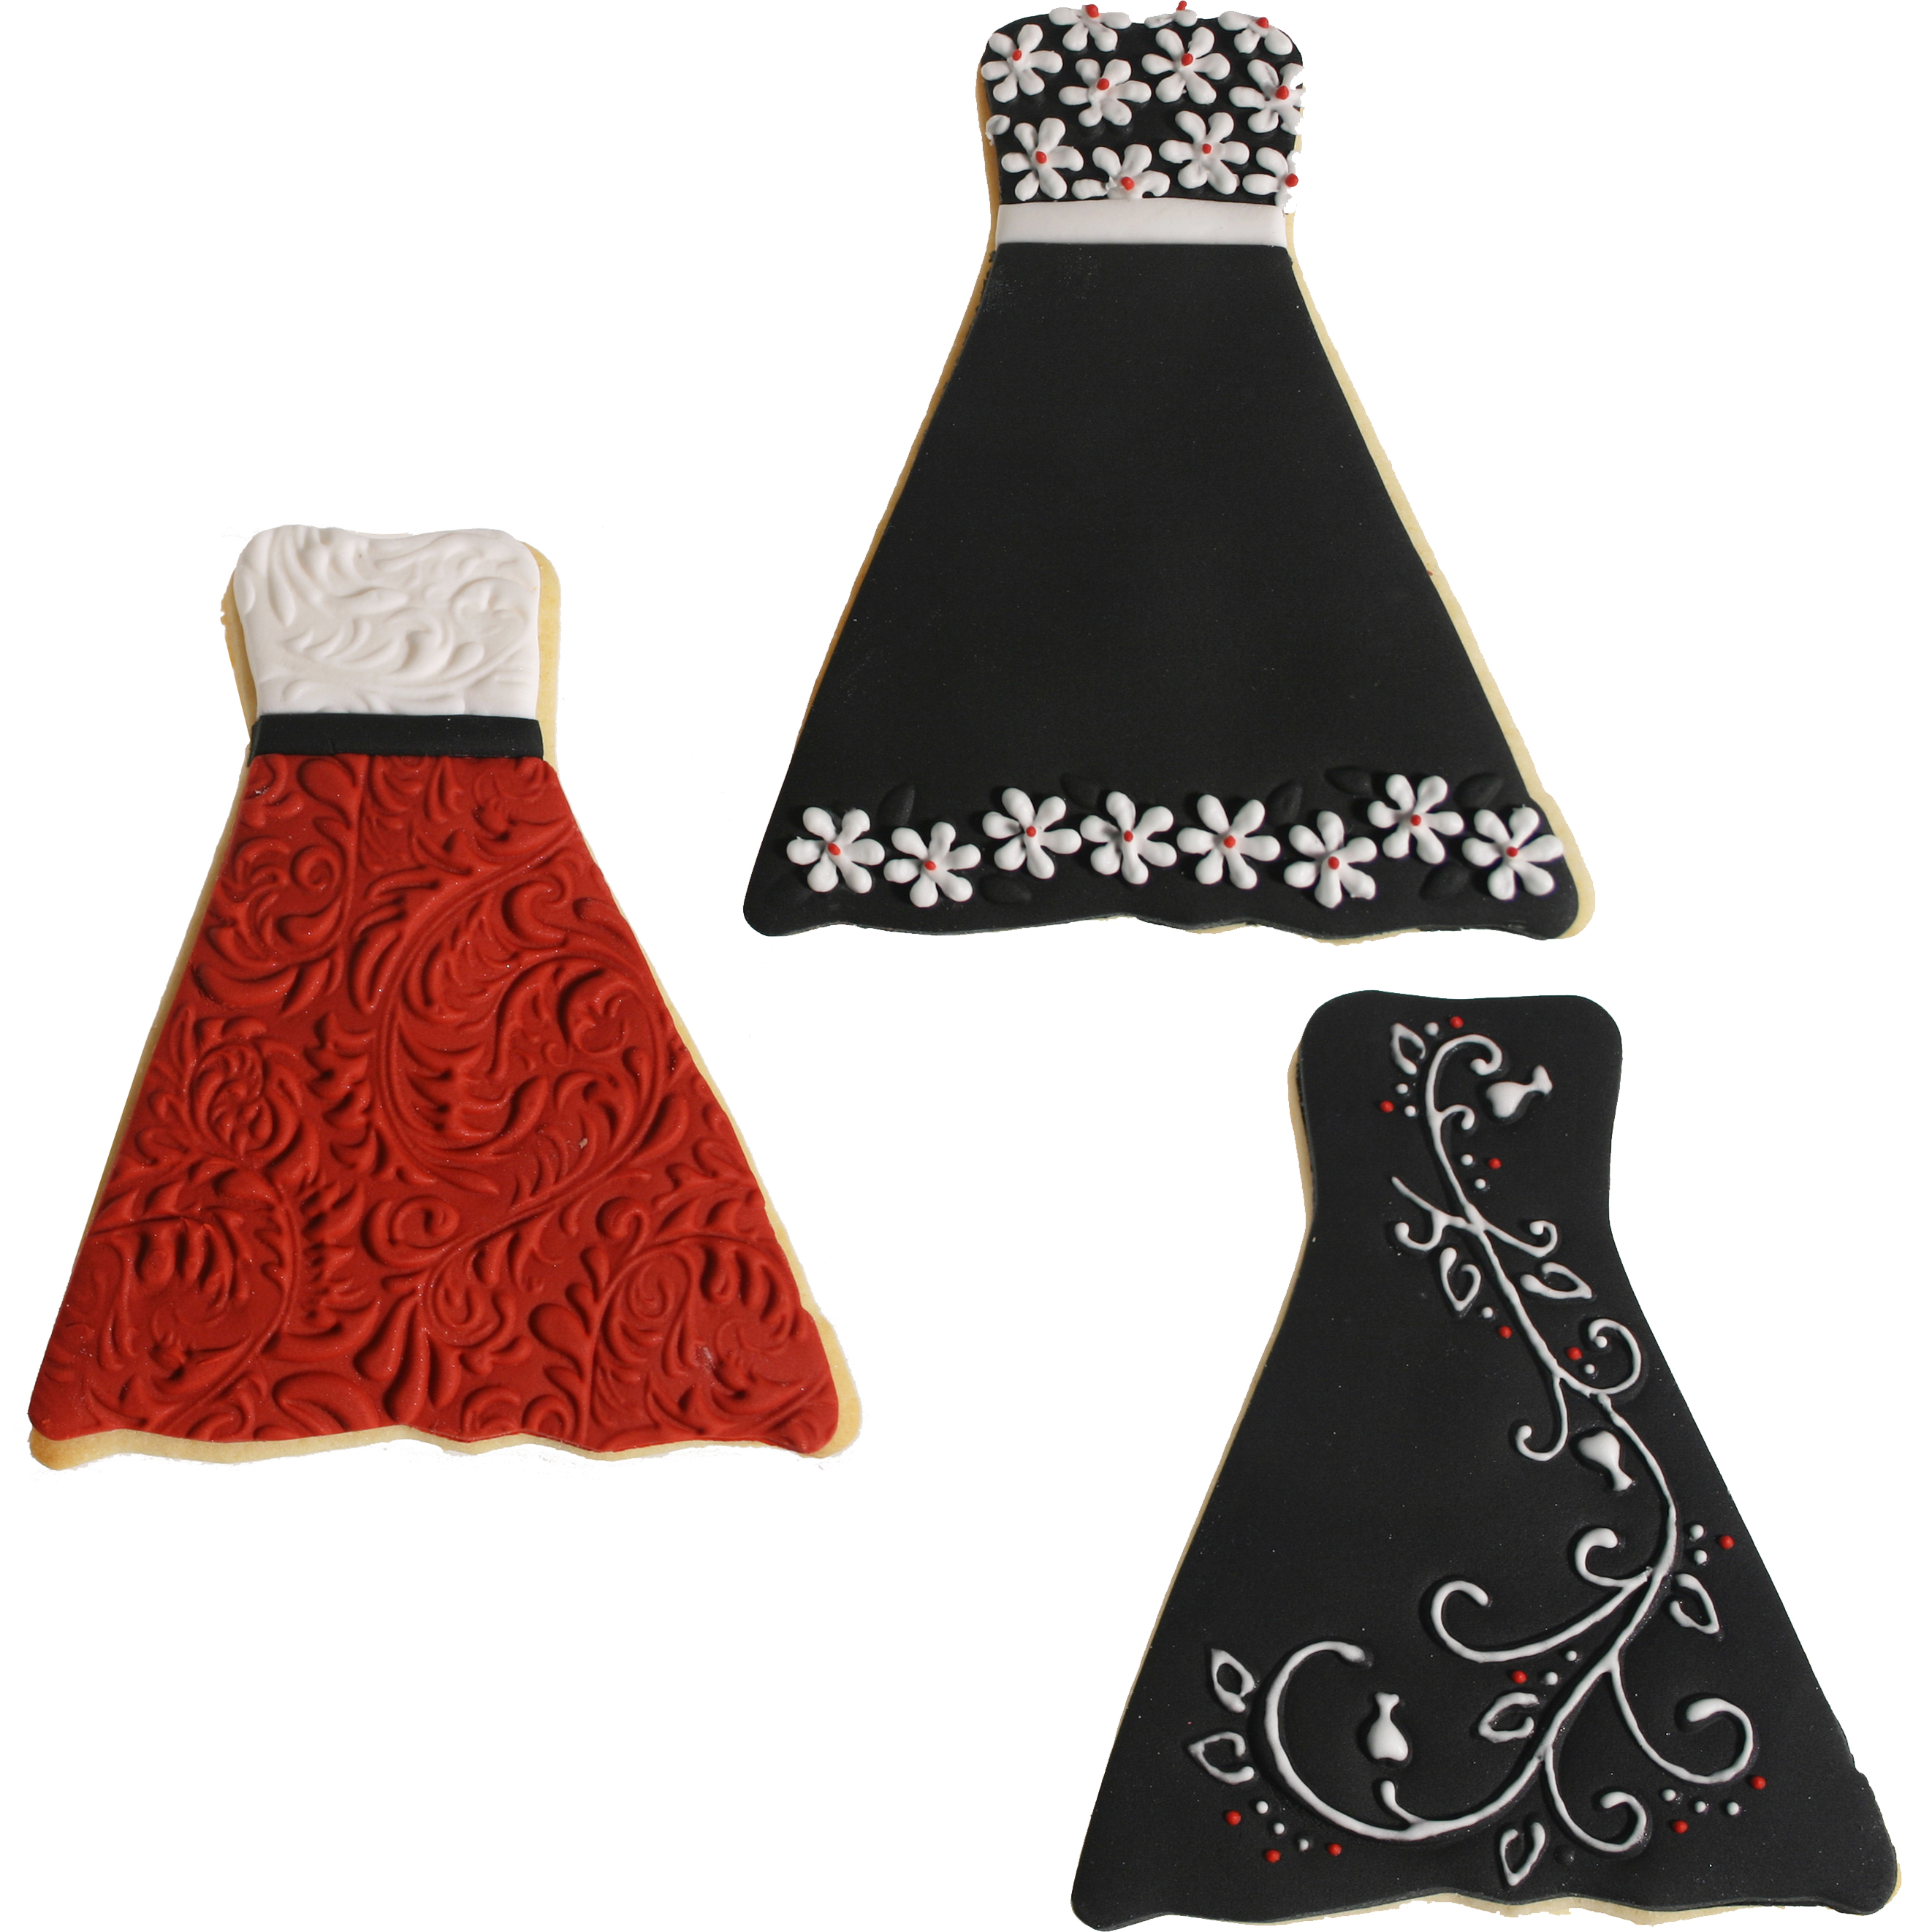 wedding dress cookie wedding dress cookie cutter Black and Red Formal Gowns formal gown cookie cutter